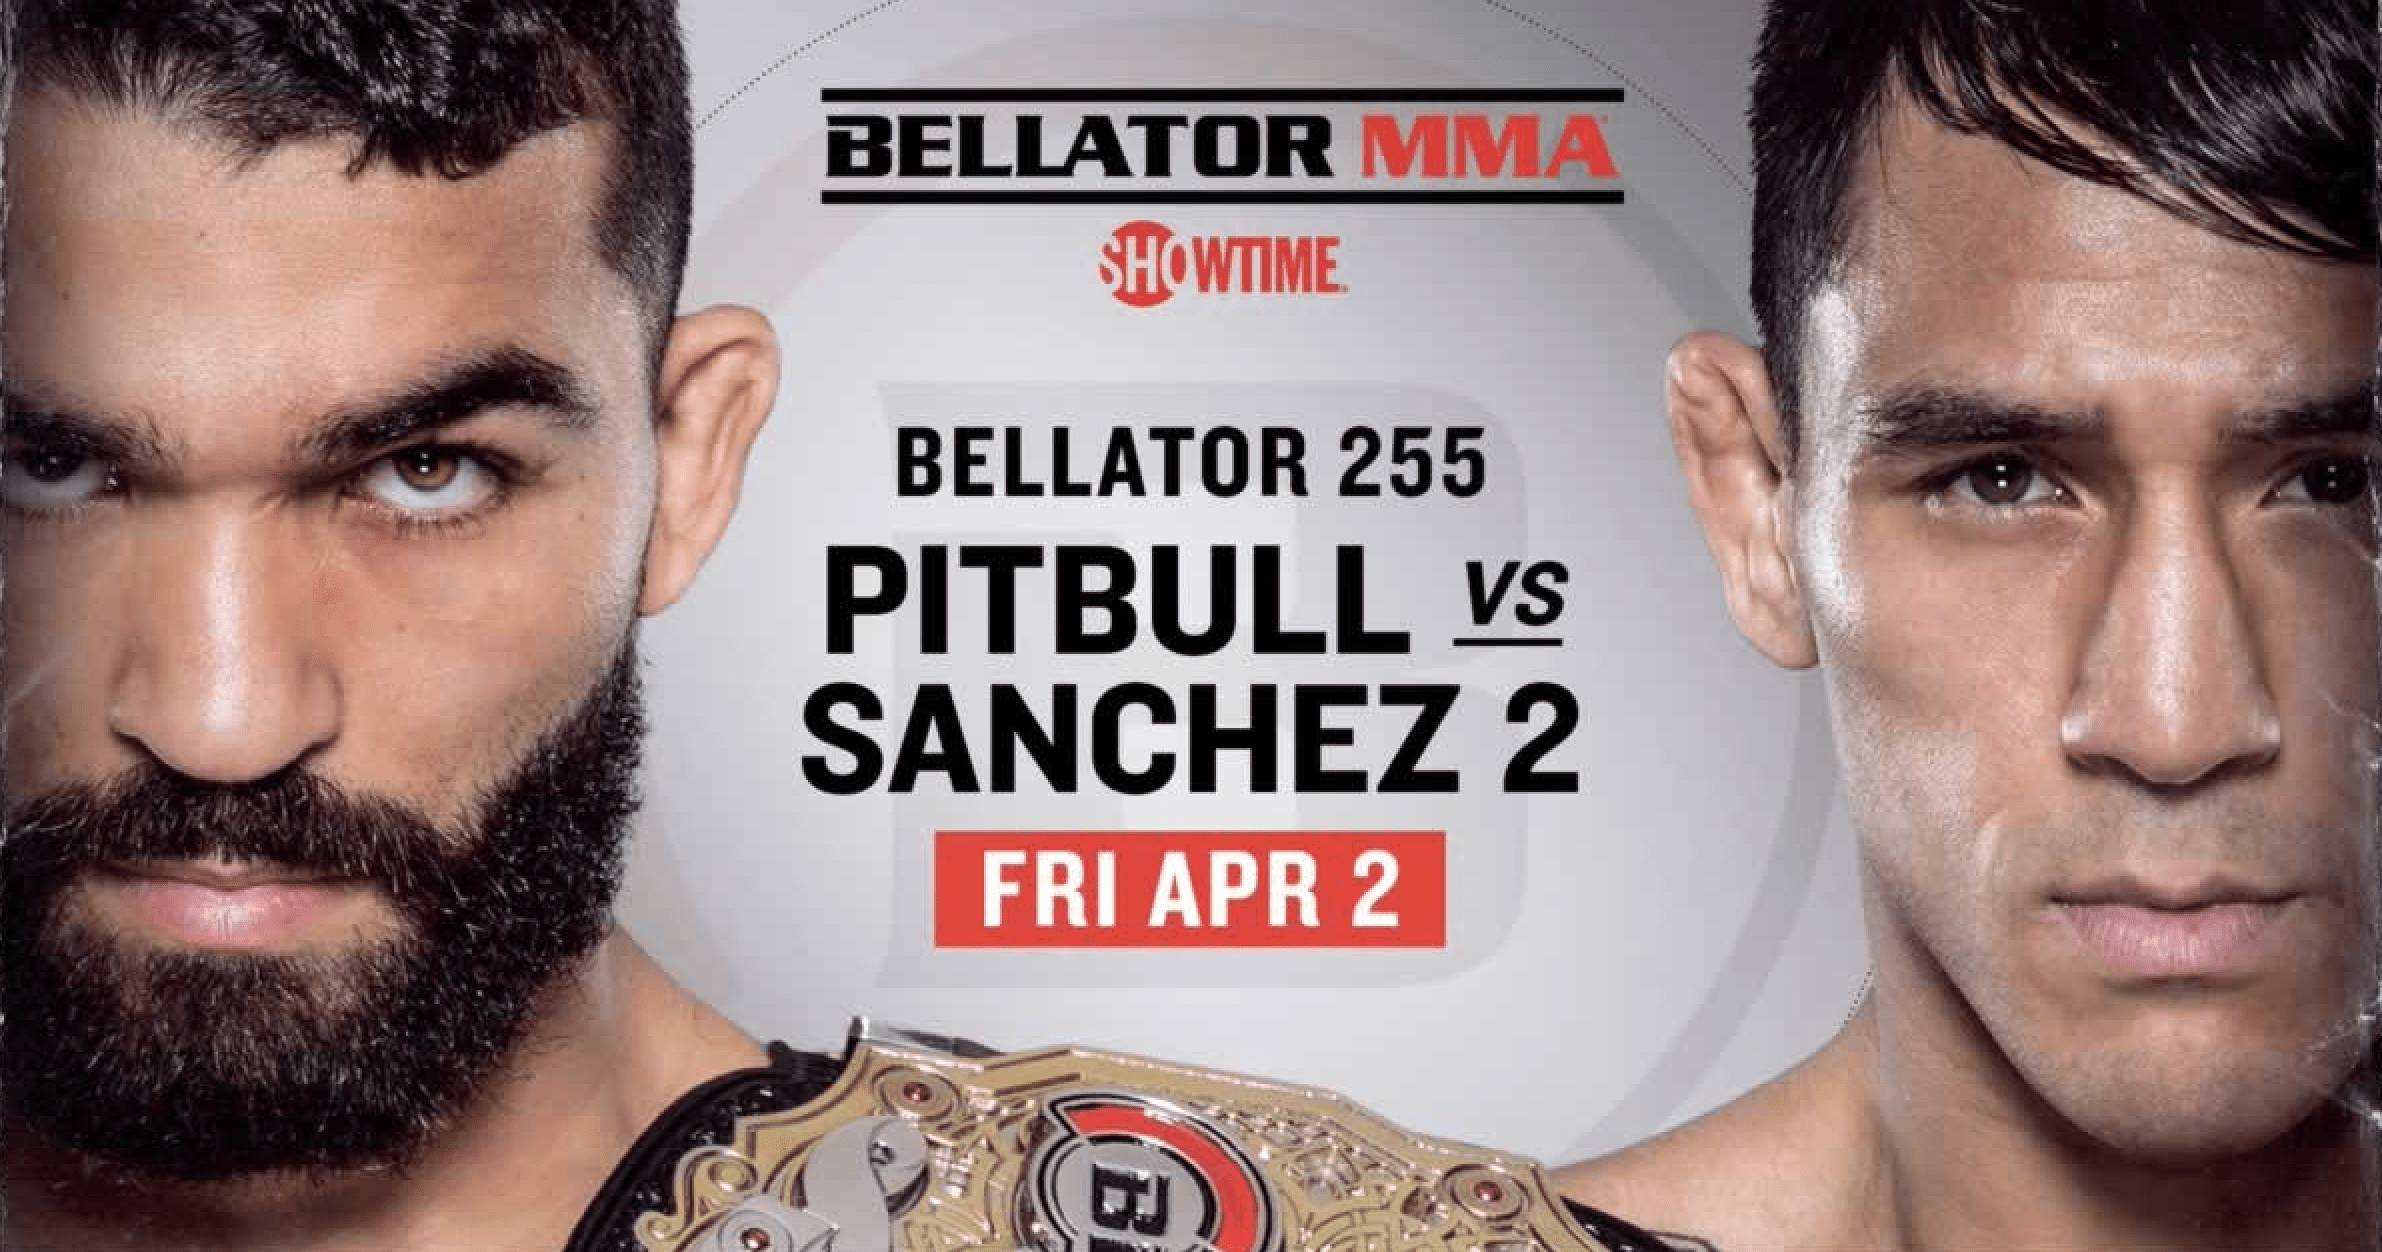 Bellator 255: Pitbull vs Sanchez 2 Results And Replay